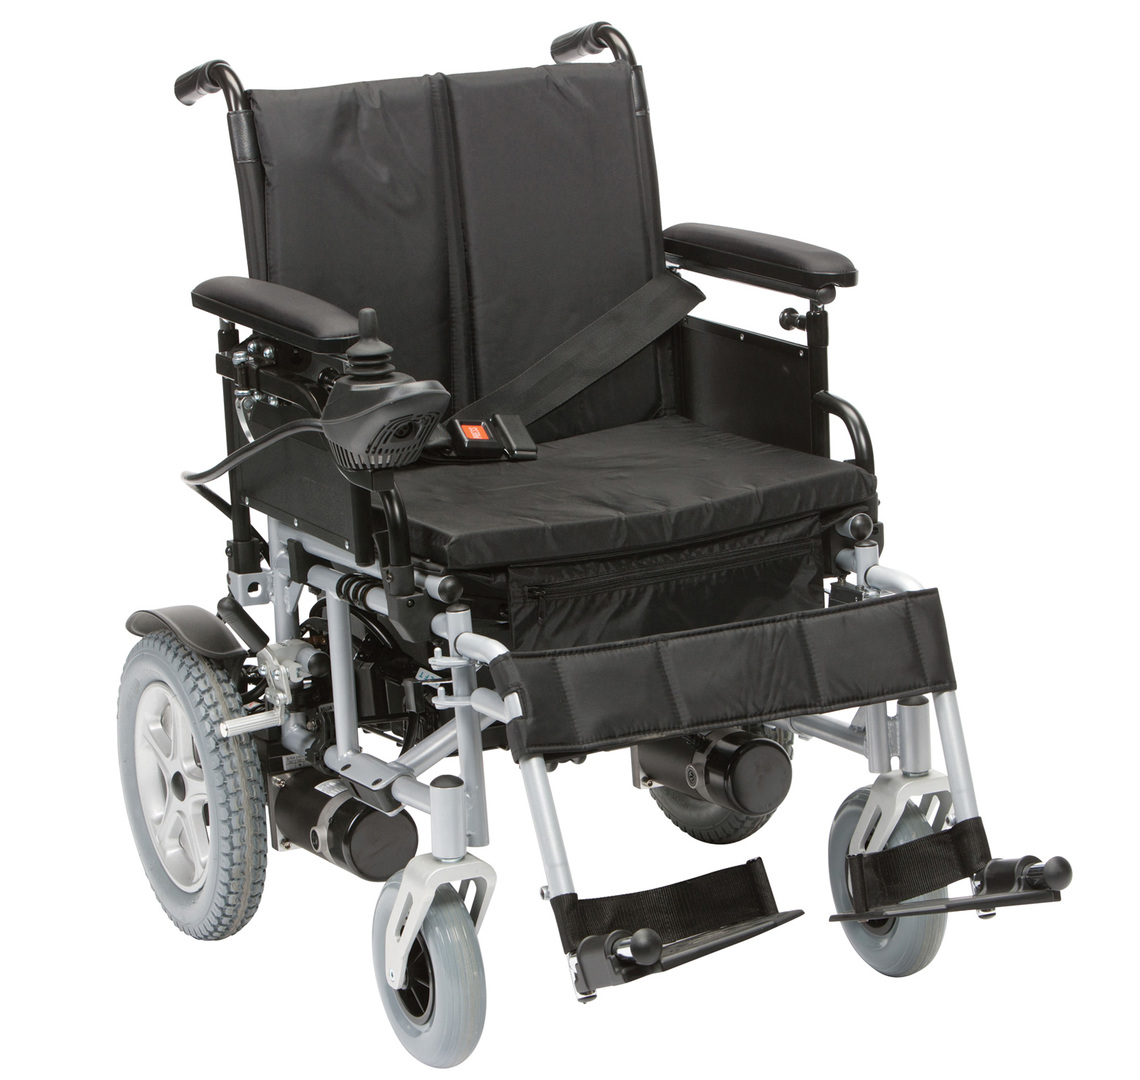 second hand sofas costa del sol pottery barn comfort slipcovered sofa reviews electric wheelchair hire rental